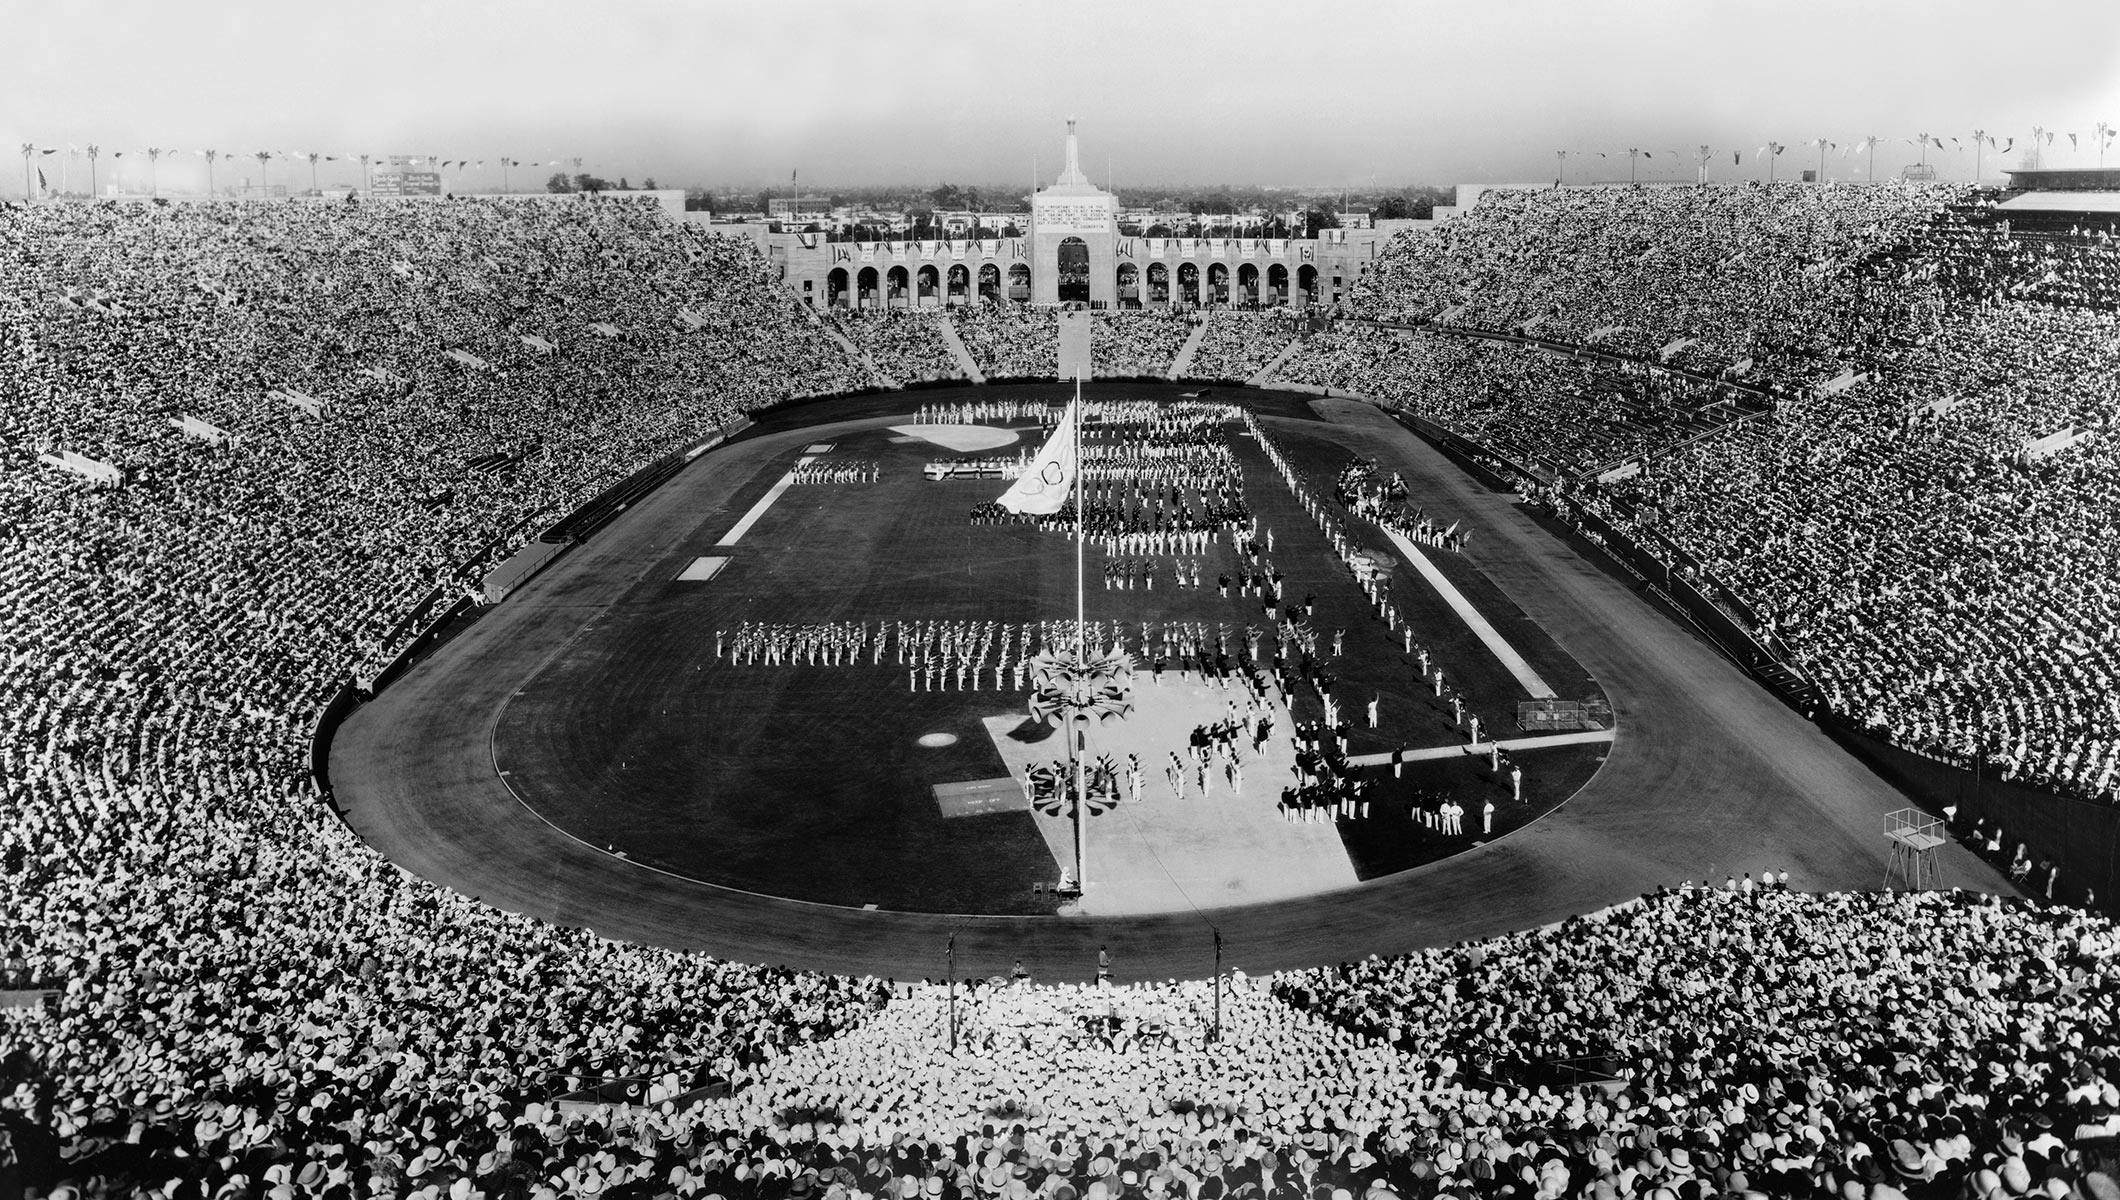 los angeles 1932 california welcomes the world olympic news